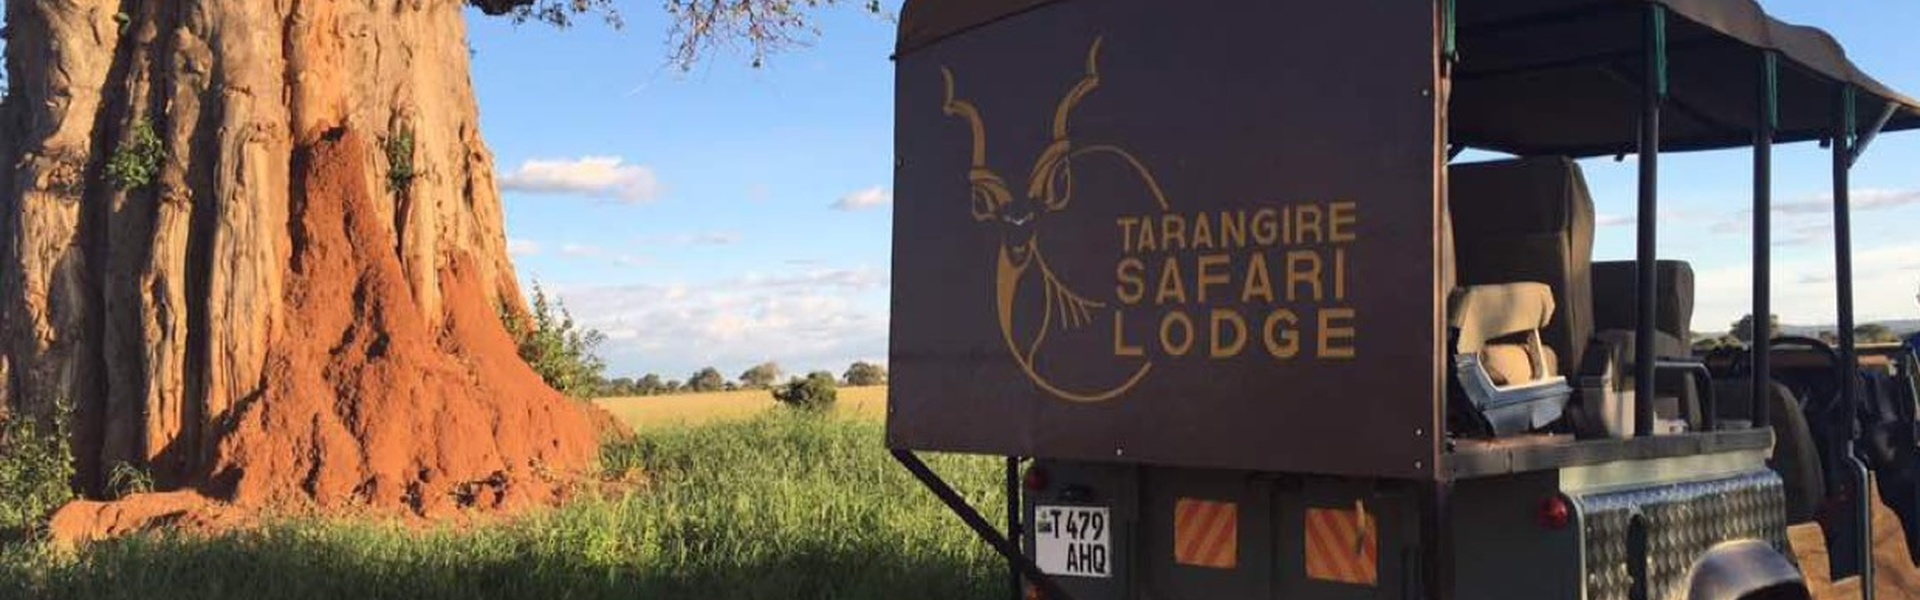 Tarangire Safari Lodge | Sous l'Acacia